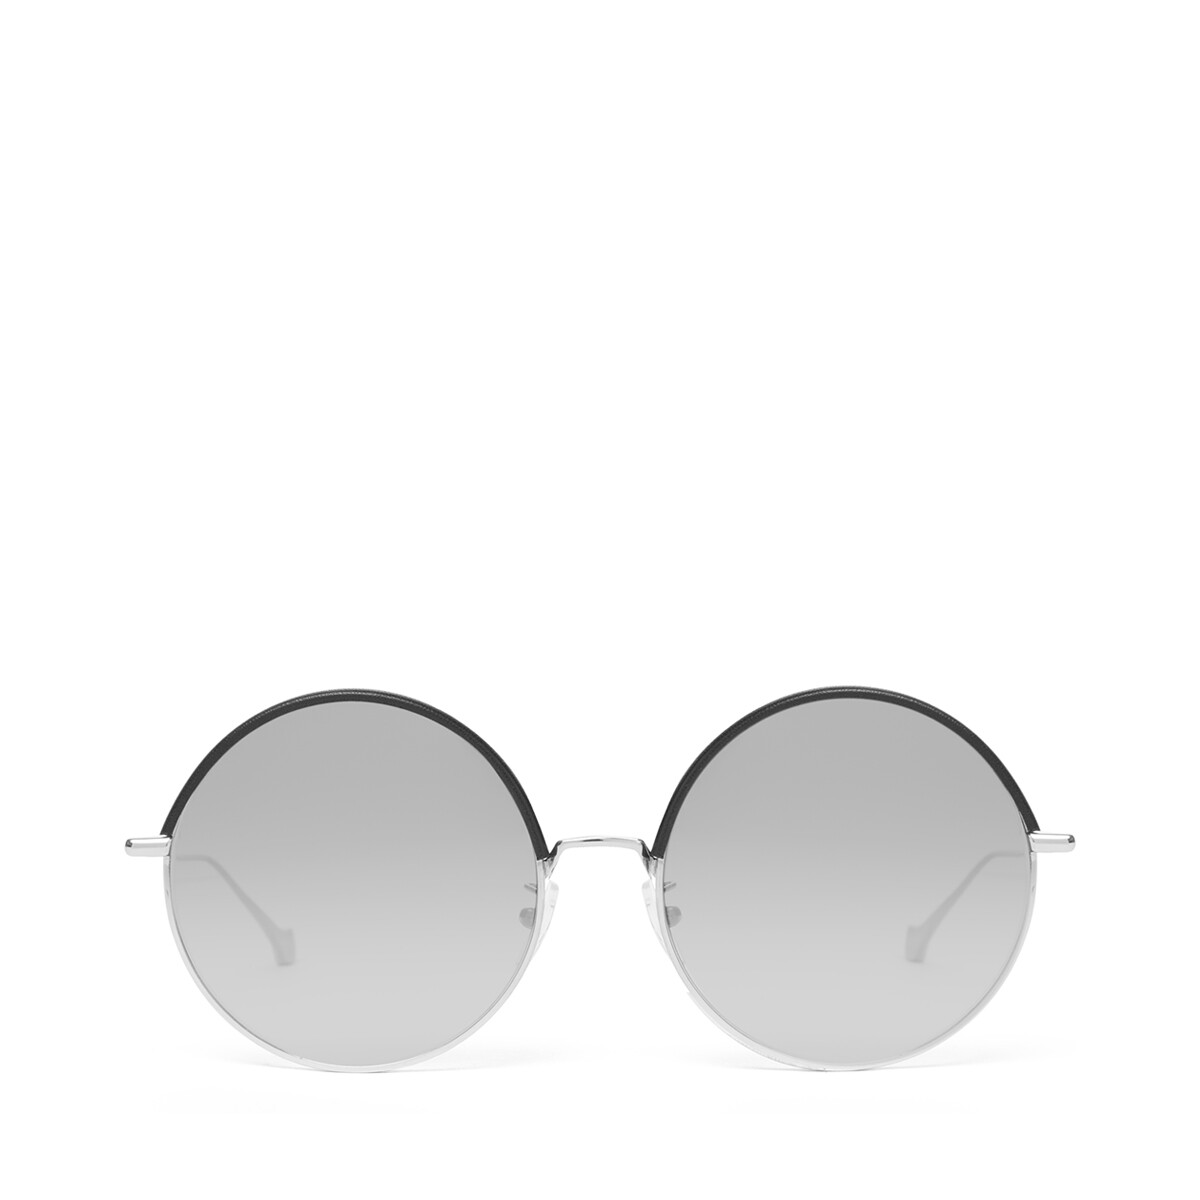 LOEWE Round Sunglasses Black/Gradient Smoke front